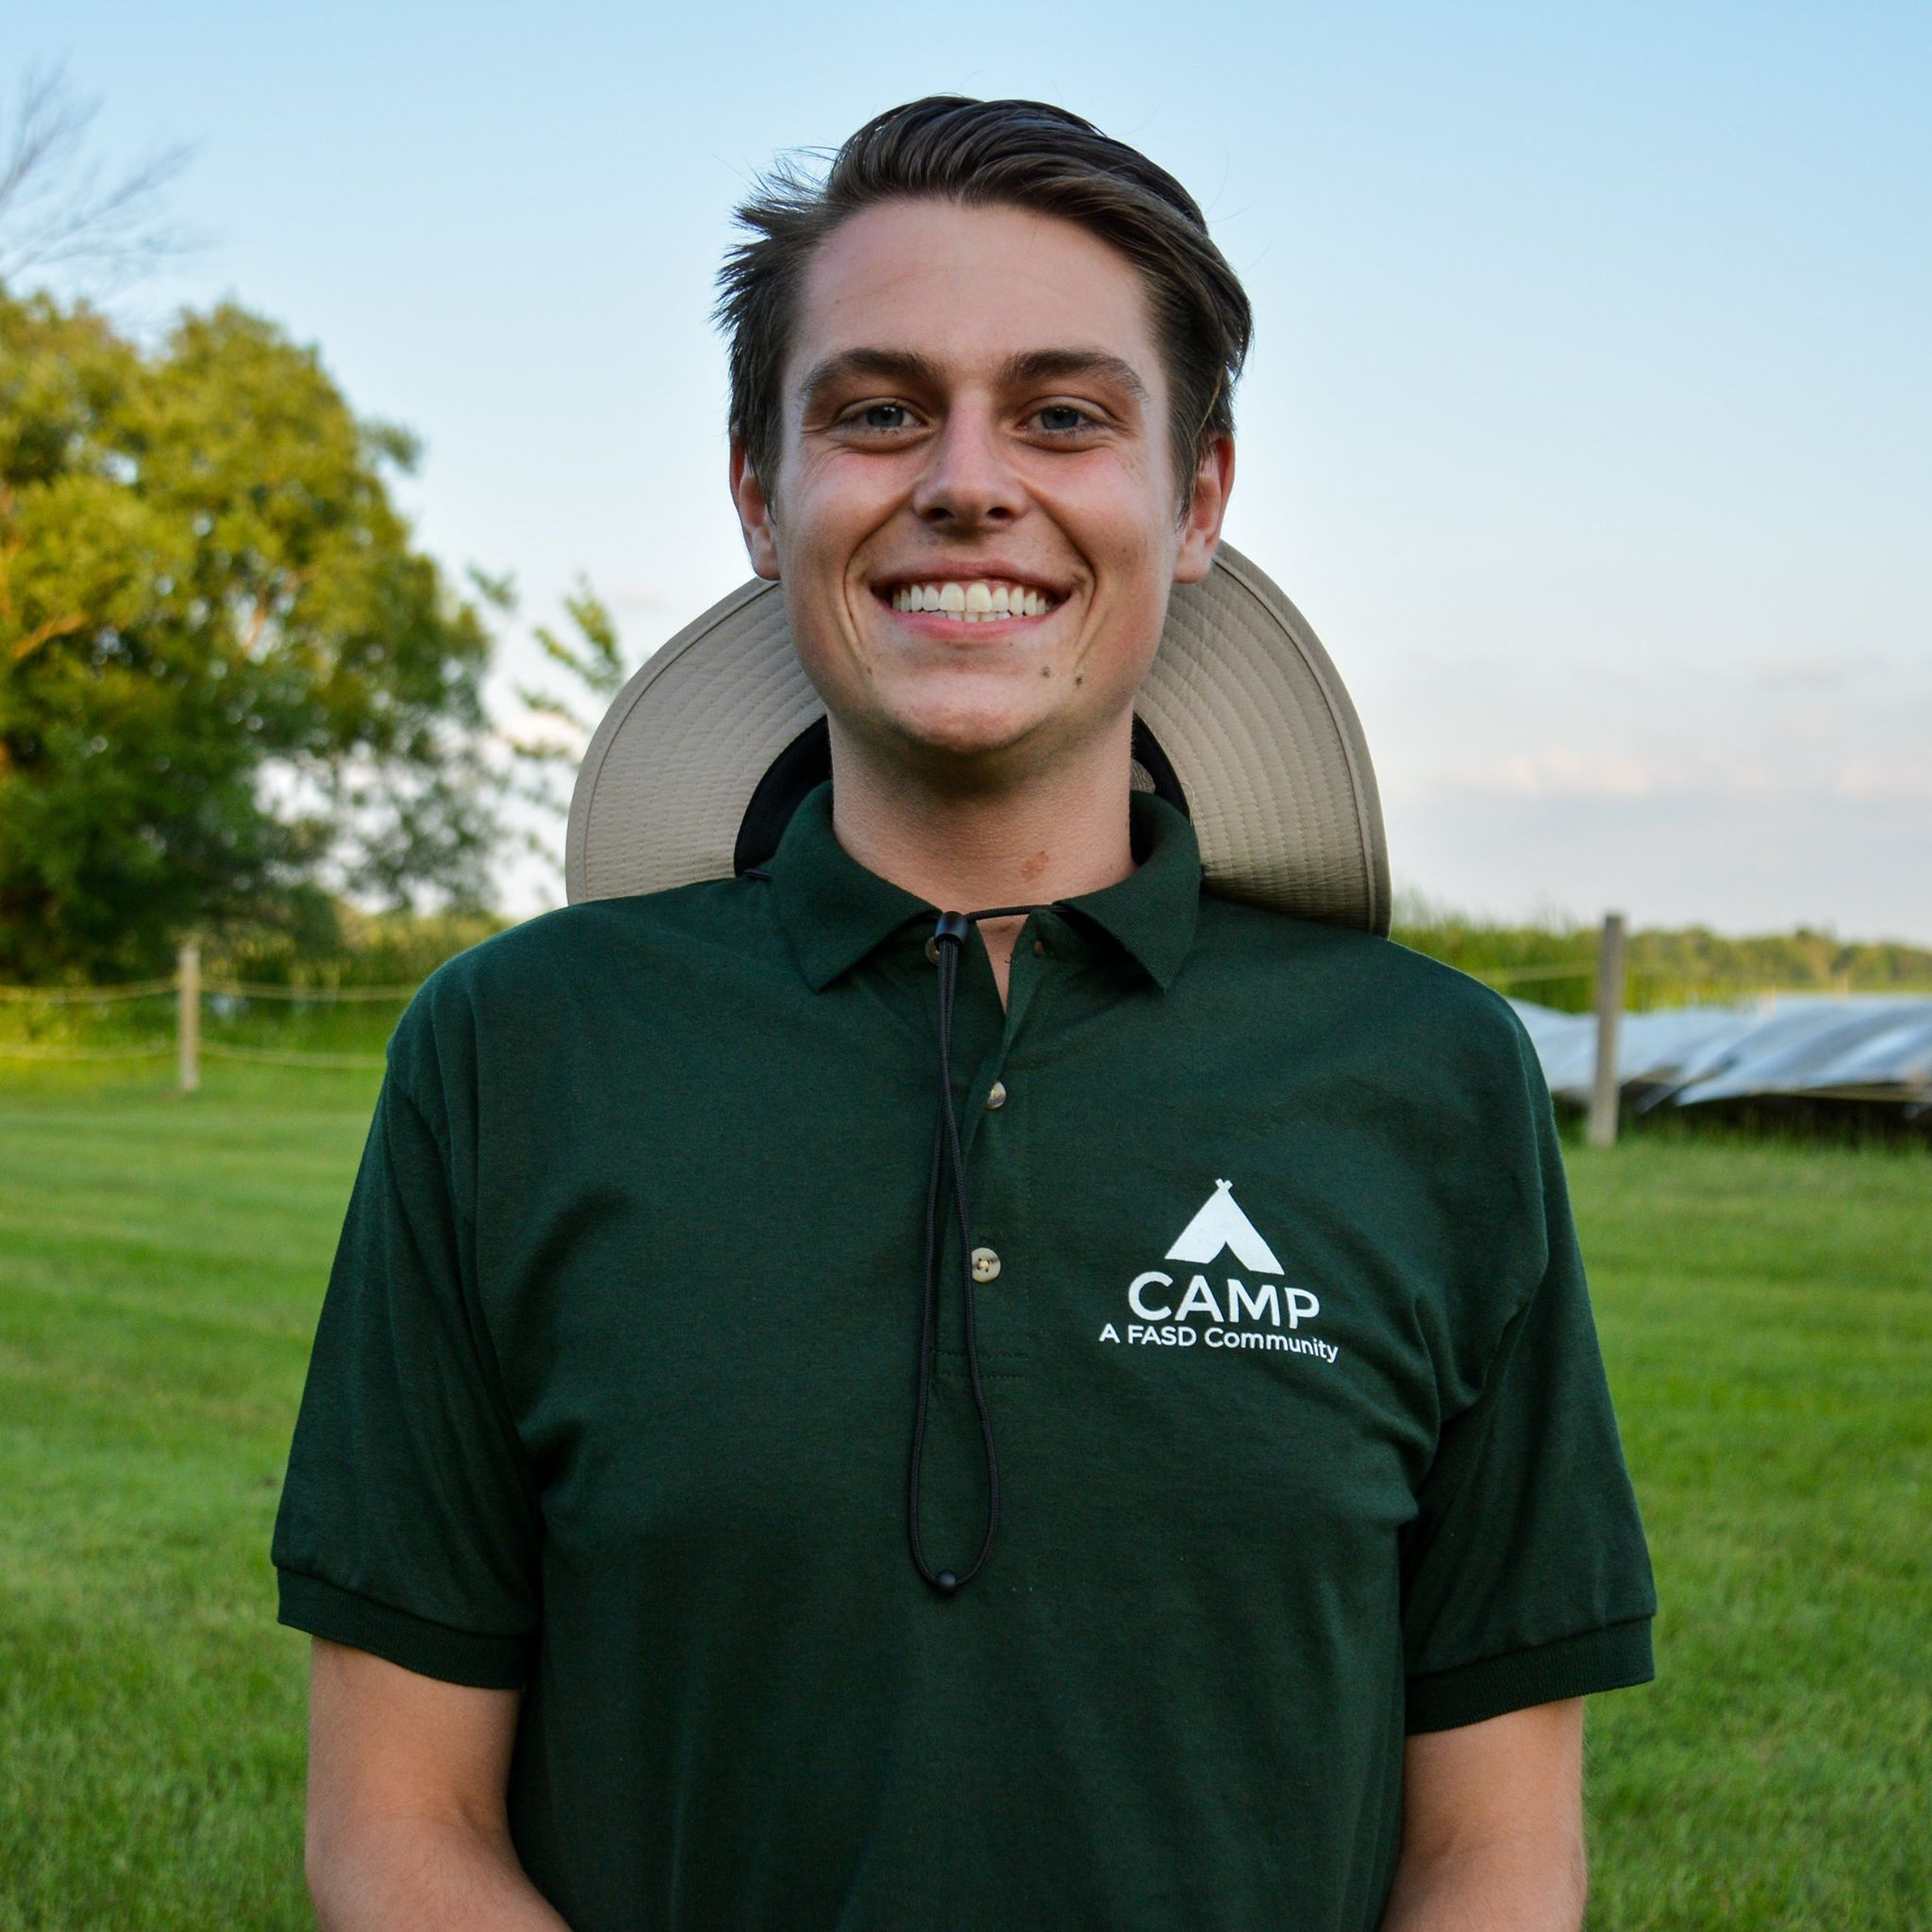 LUCAS WELK     Board of Director    Some of you may recognize Luke as he has served as a counselor at CAMP the past three summers. He studied Biology and Chemistry at DePaul University before studying abroad in Paris during his last quarter and graduating in 2017. While in school, Luke did genetics research and volunteered his time assisting with spay and neuter surgeries at the Anti-Cruelty Society. Currently, Luke works on protein crystallography at Argonne National Laboratory, looking into potential treatment for hypercholesterolemia and Alzheimer's. Luke is passionate about our mission at CAMP, FASD community, and he is looking forward to seeing the organization continue to grow and help the world.